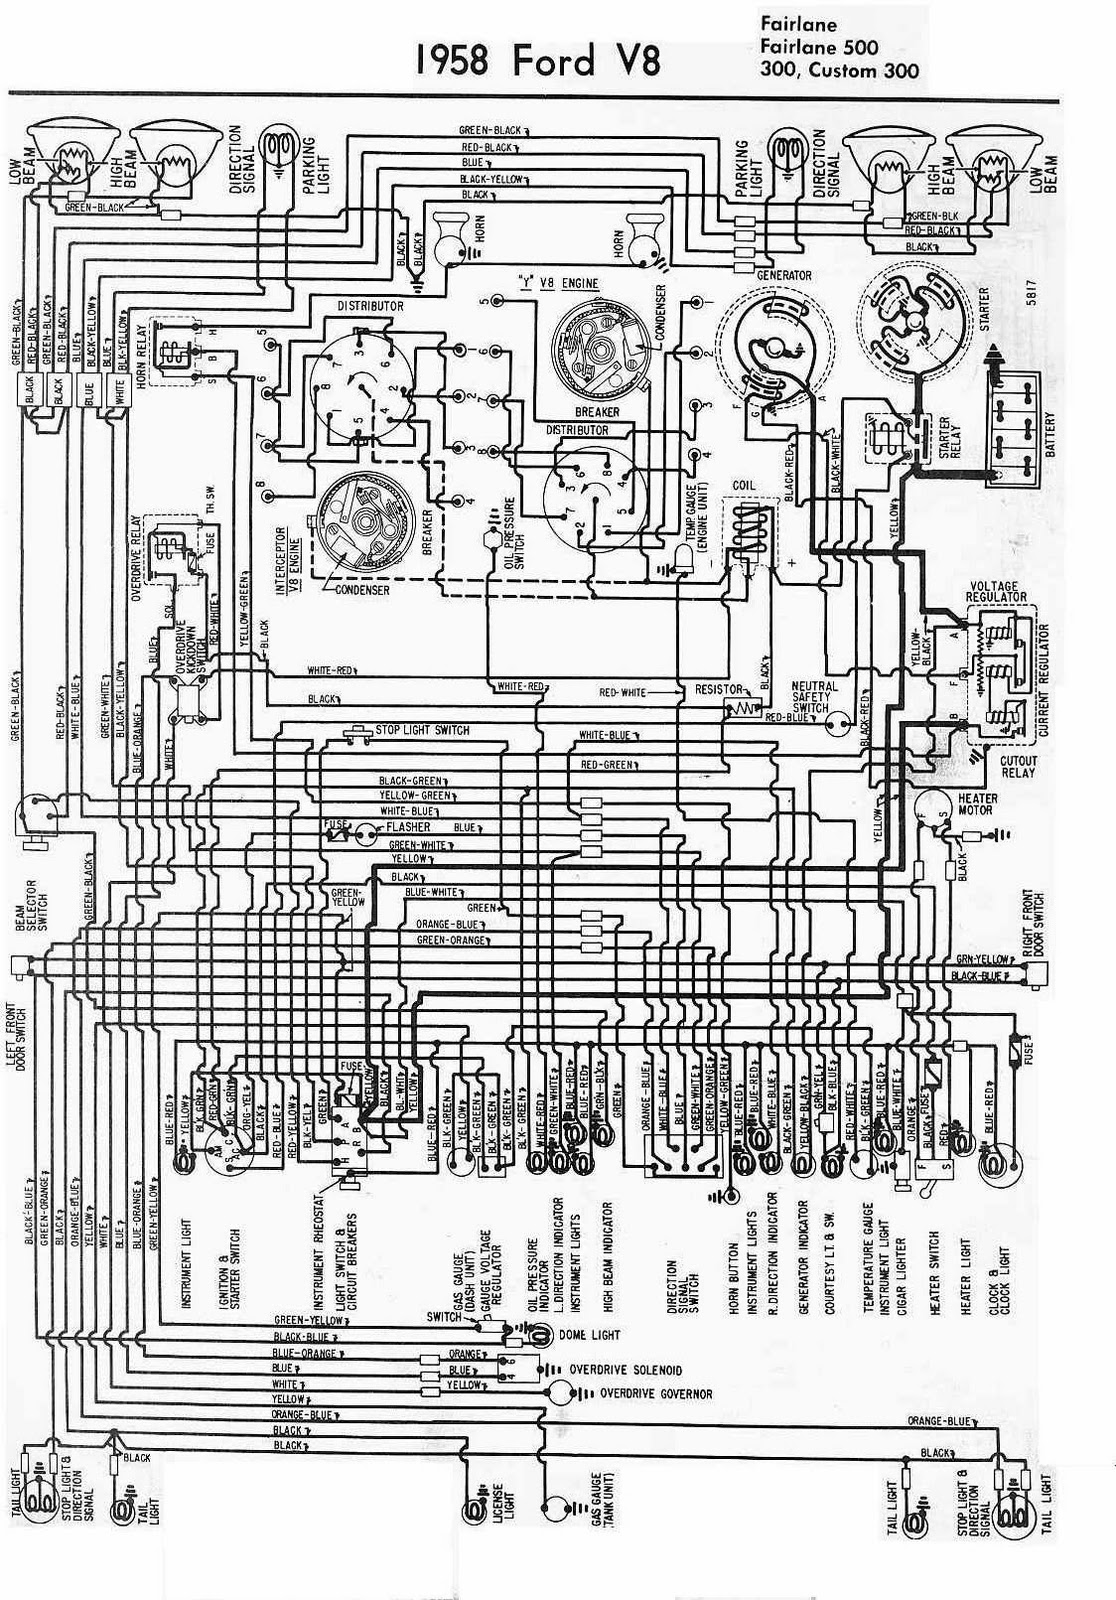 Phenomenal Telegraph Wiring Diagram Get Free Image About Wiring Diagram Wiring Digital Resources Remcakbiperorg